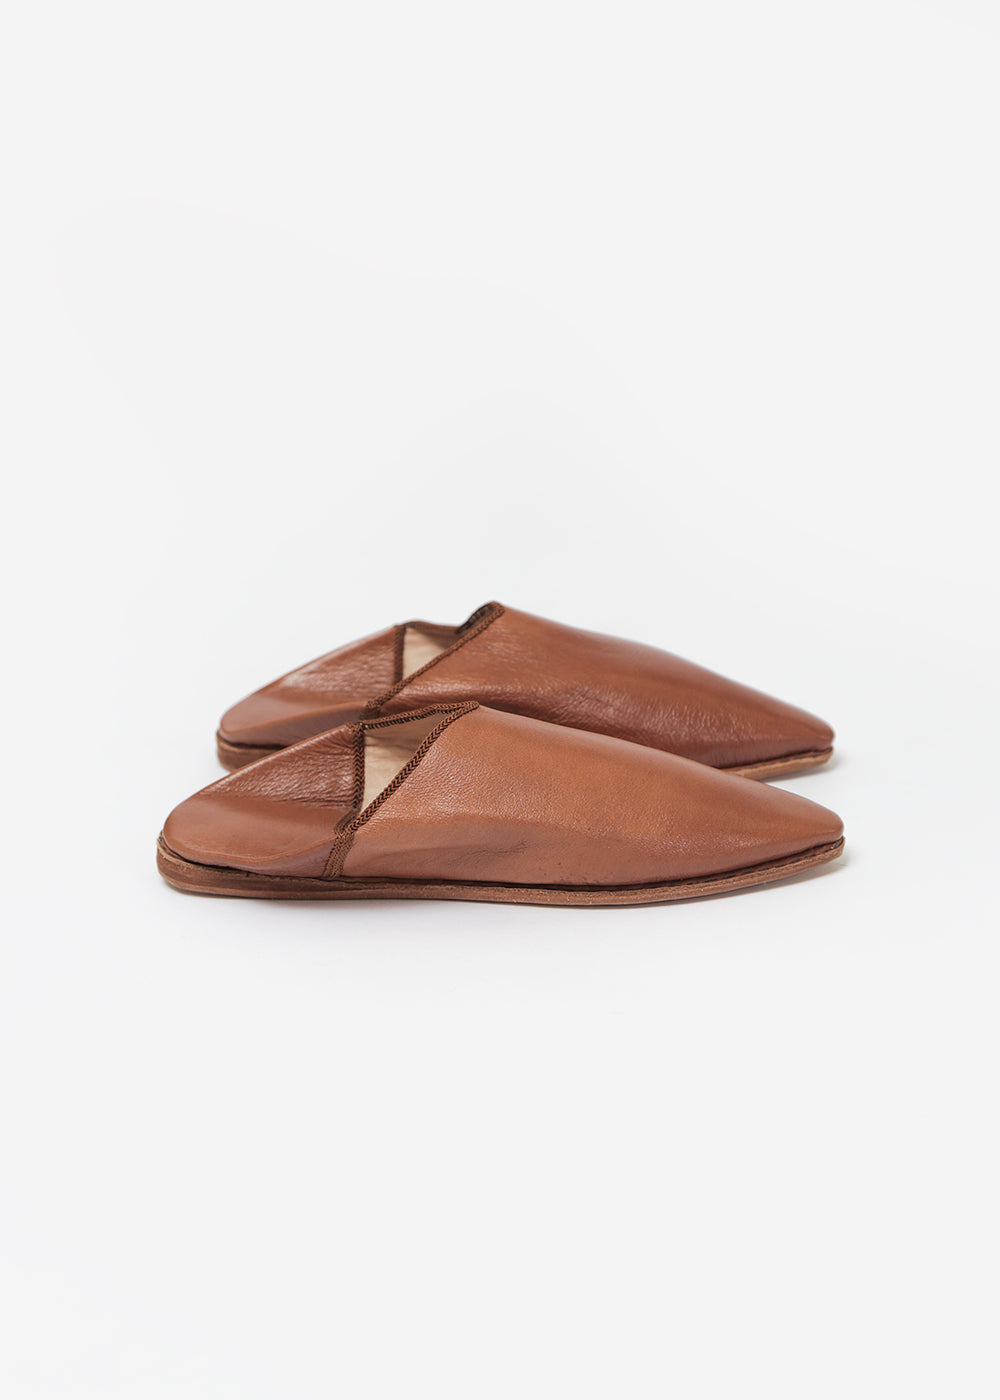 Bronze Age Camel Massa Leather Babouche — New Classics Studios